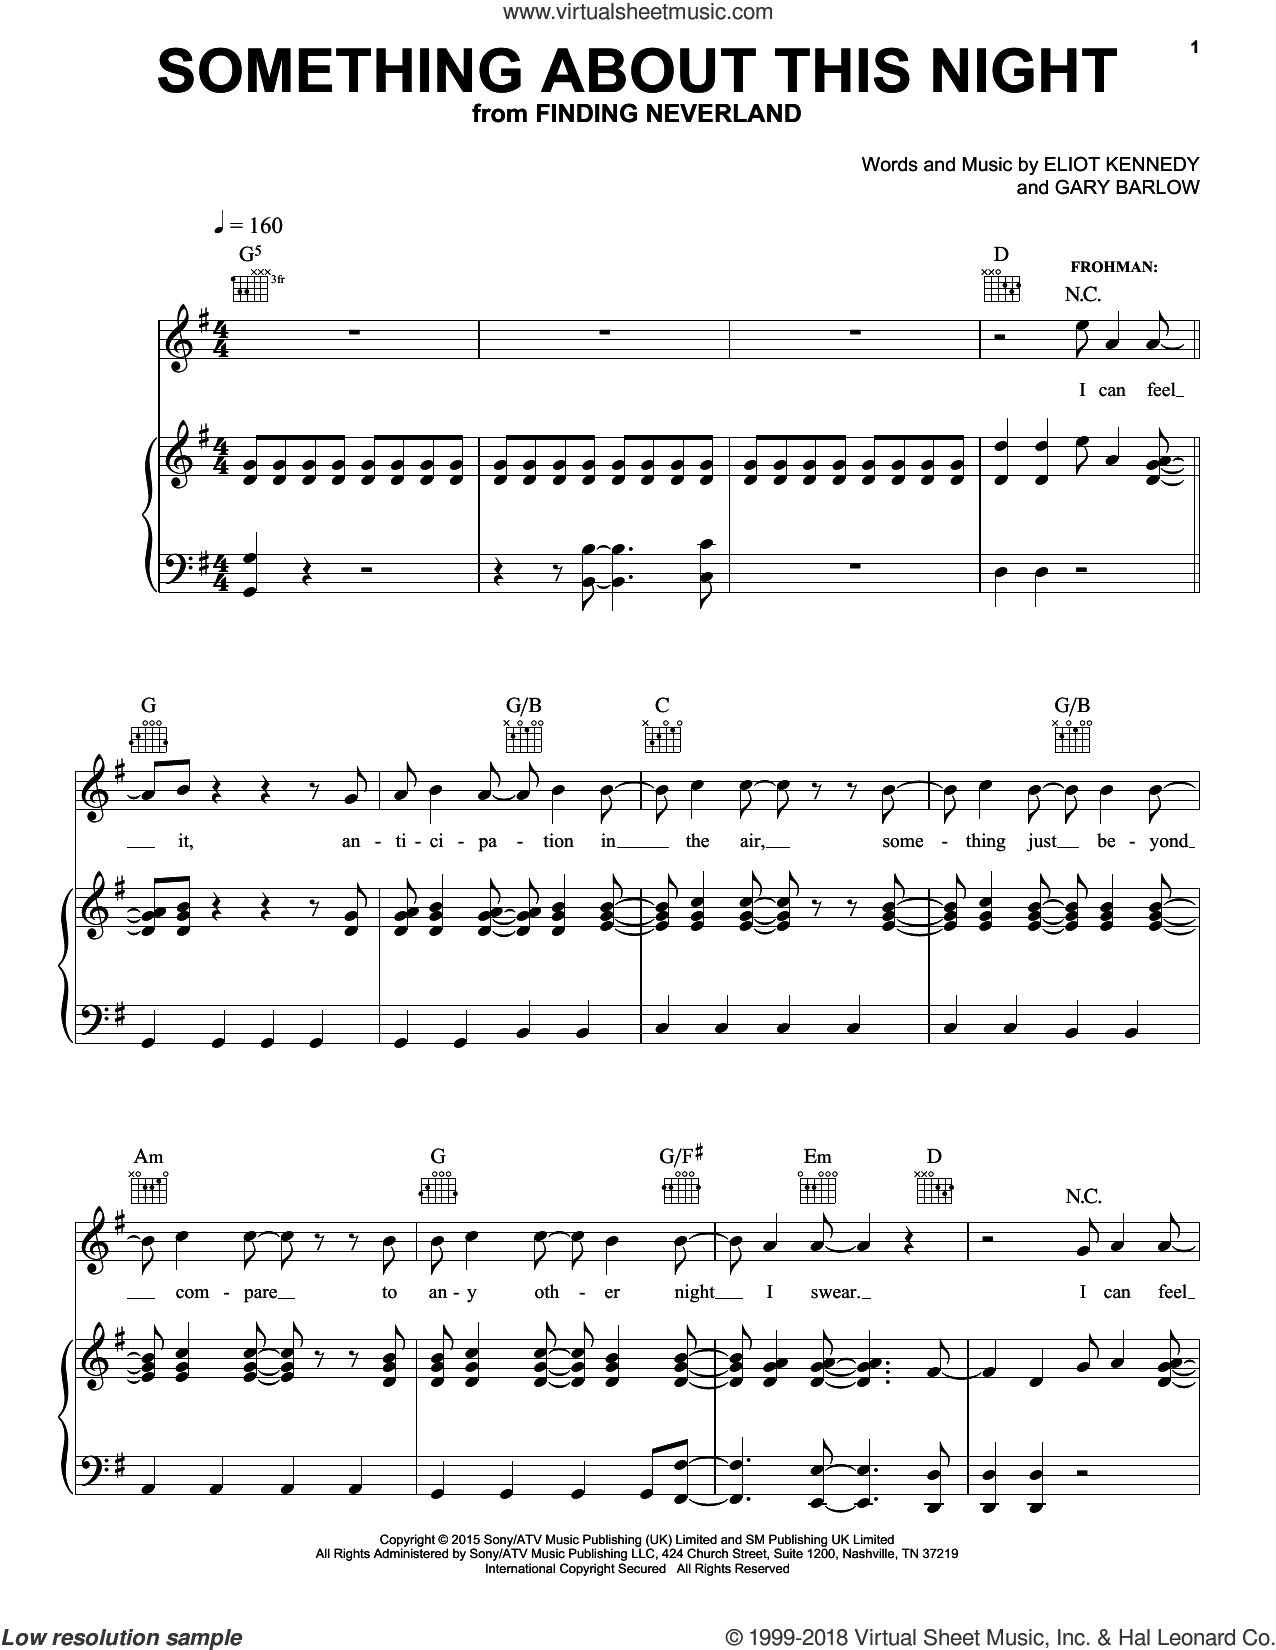 Something About This Night sheet music for voice, piano or guitar by Gary Barlow & Eliot Kennedy, ELIOT KENNEDY and Gary Barlow. Score Image Preview.